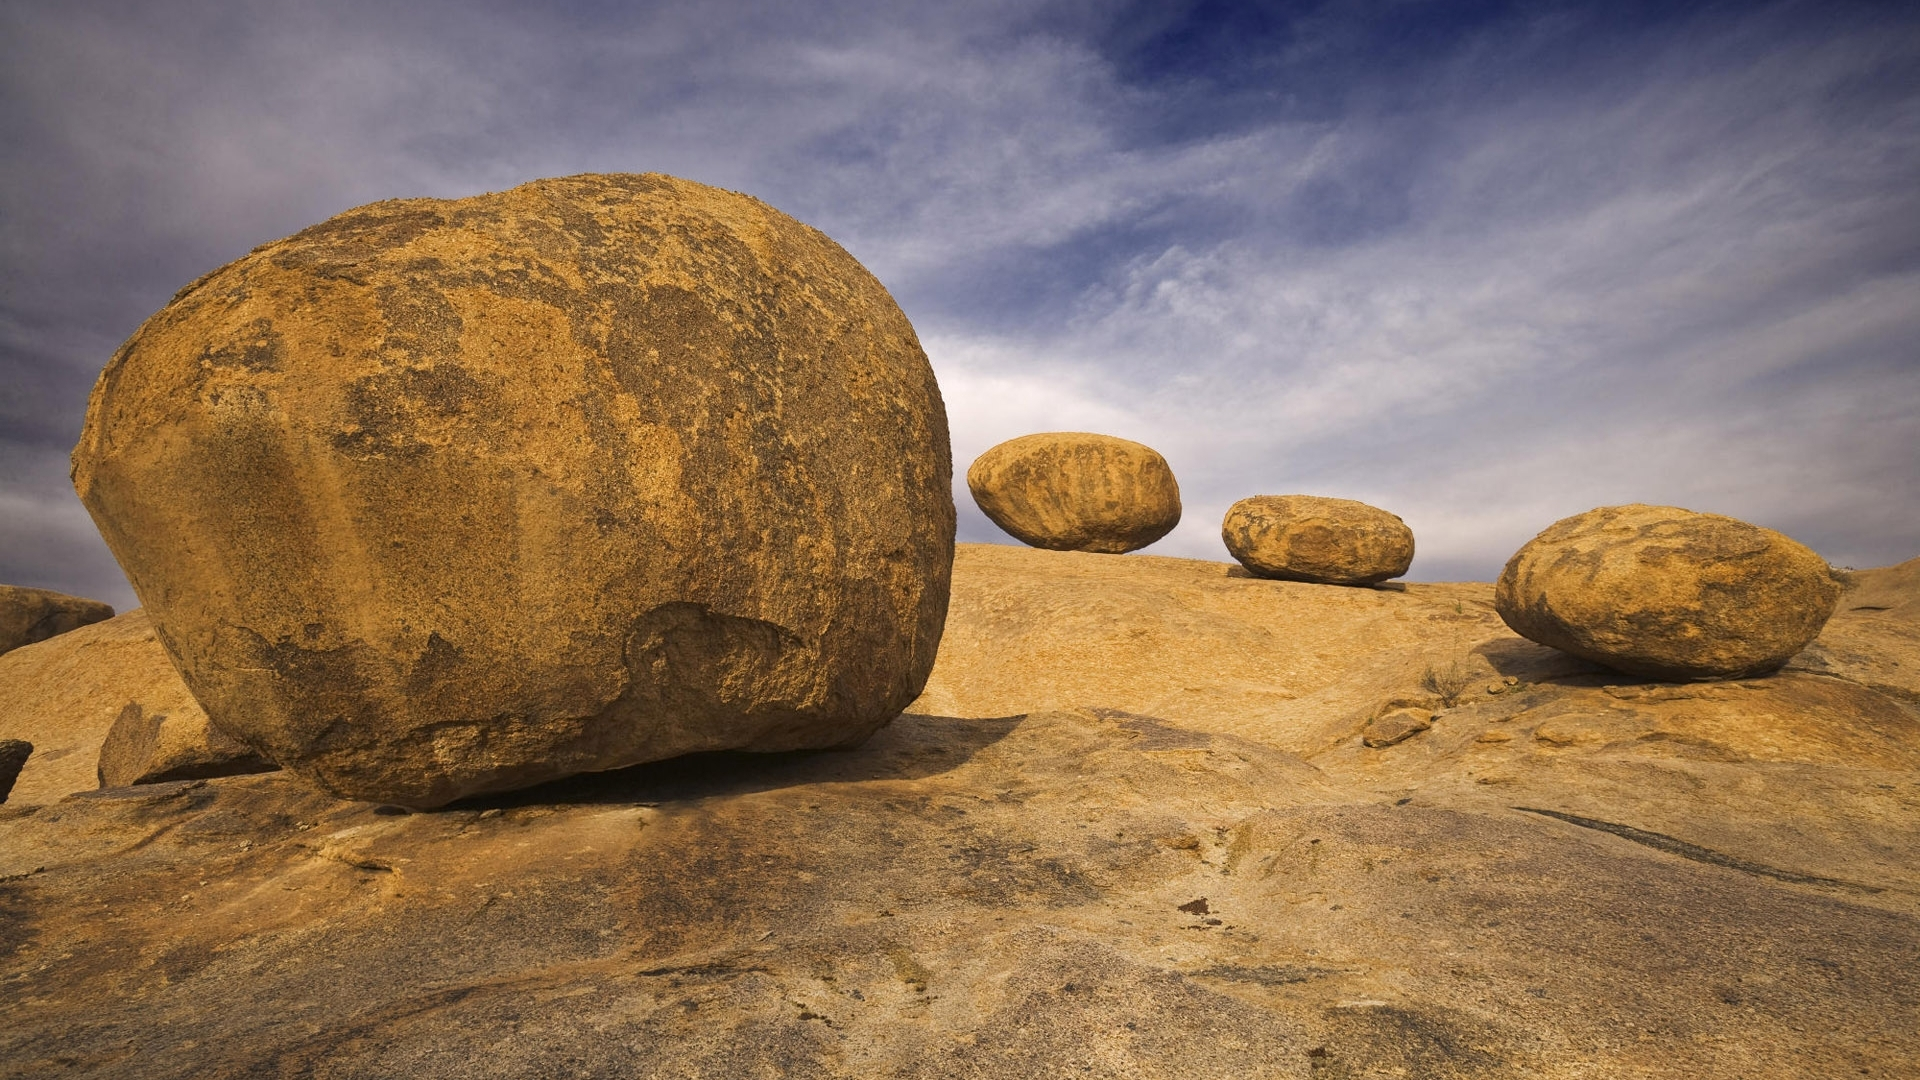 """Download the following Free Boulders Wallpaper 39141 by clicking the orange button positioned underneath the """"Download Wallpaper"""" section."""